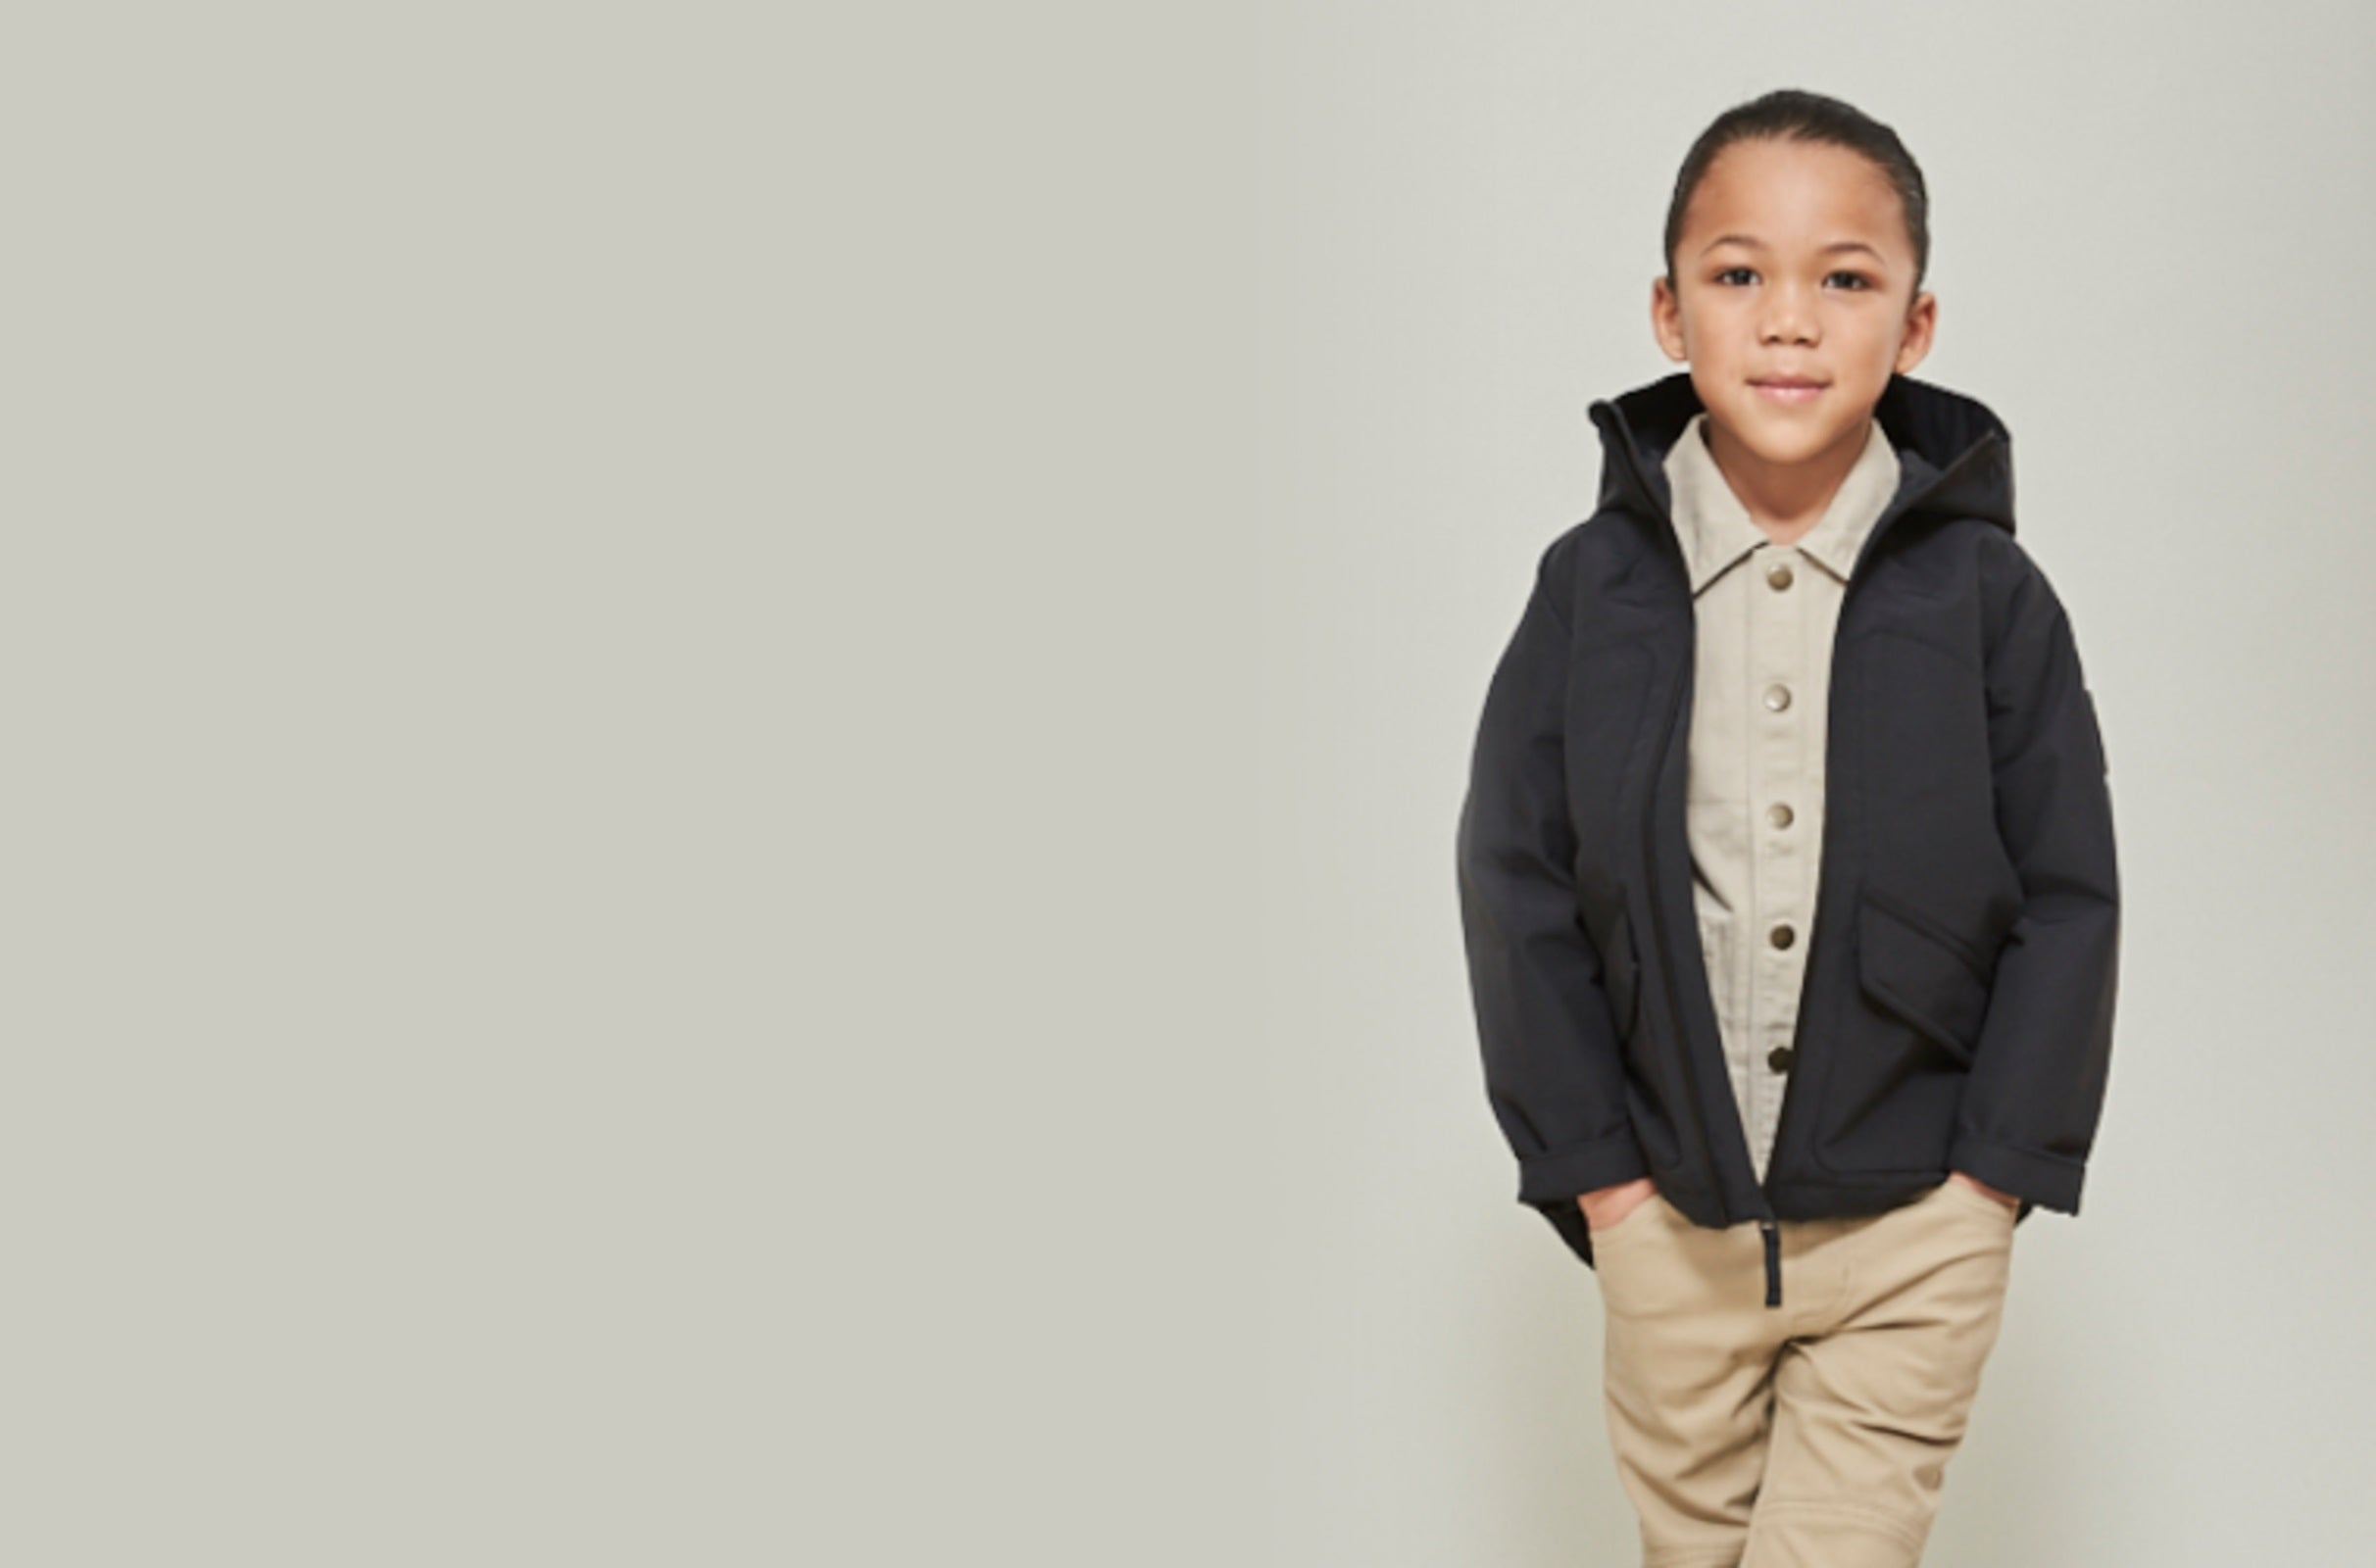 bf0370a94 Luxury Outerwear | Parkas, Jackets and Coats | Nobis Canada – Nobis ...